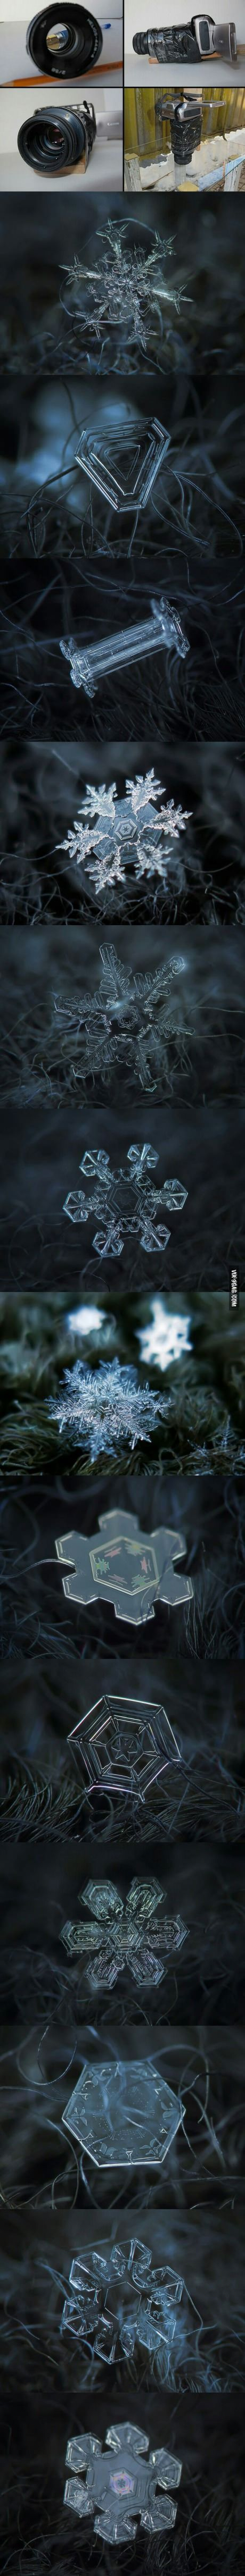 Stunning photographs of snowflakes by Russian Alexey Kljatov